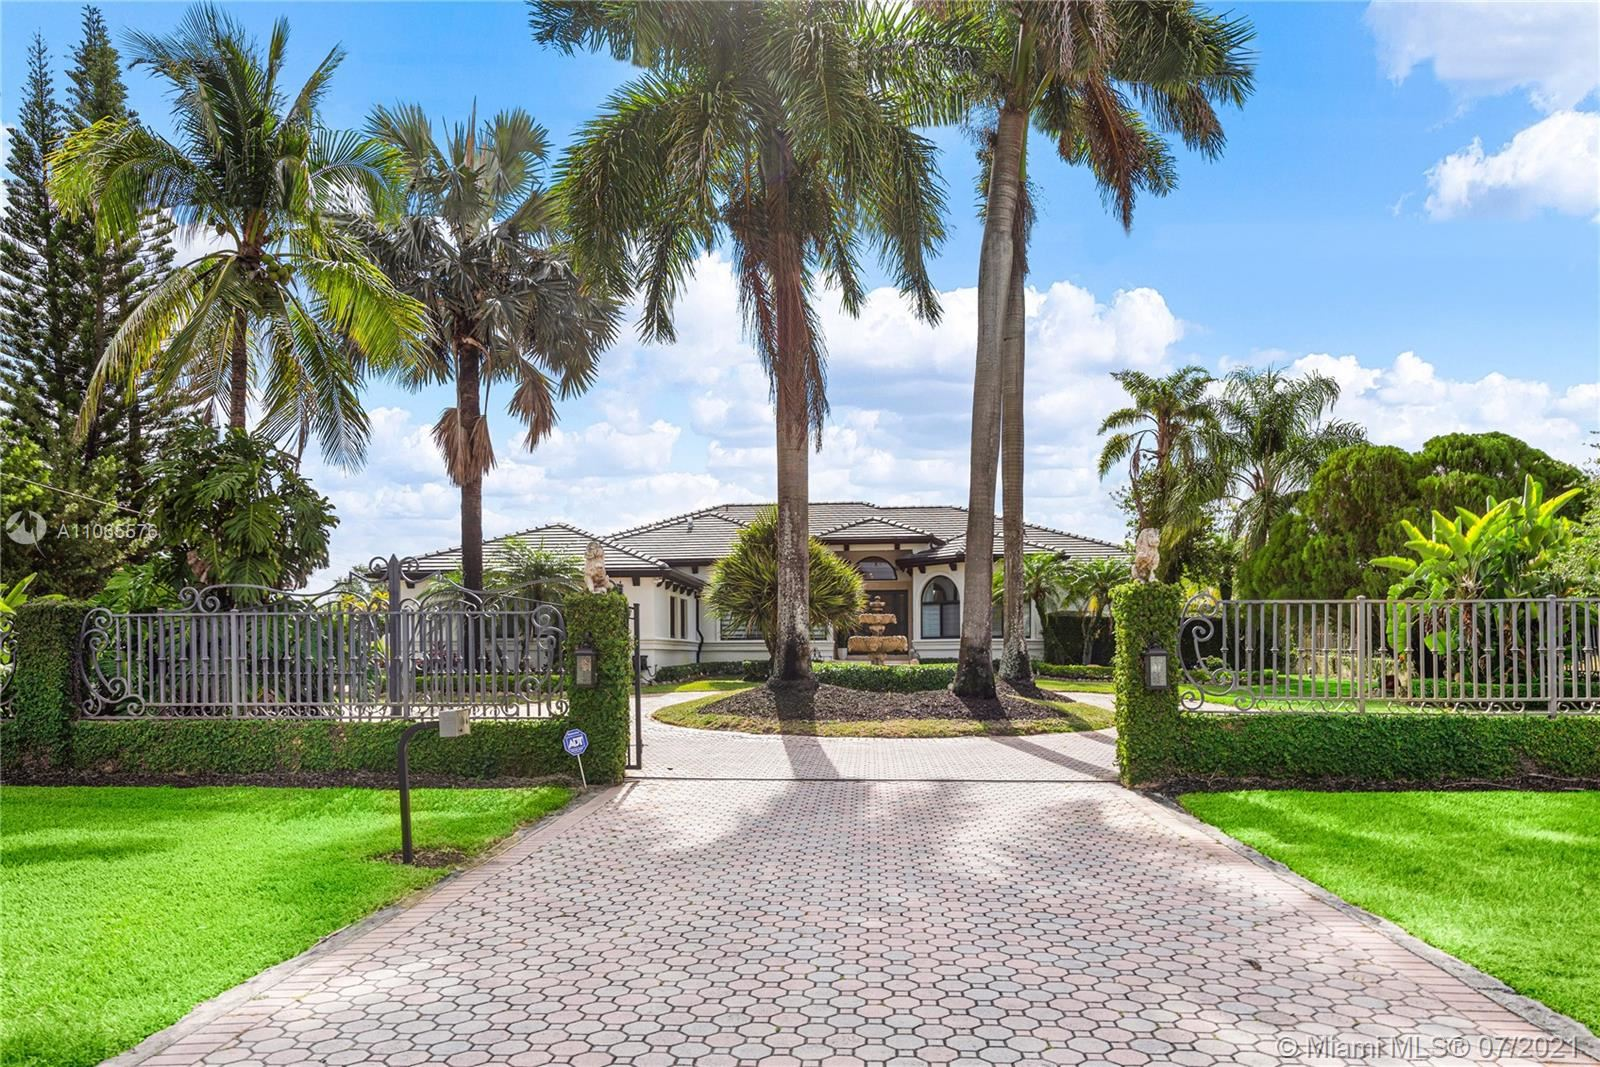 155 NW 132nd Ave, Miami, FL 33182 - #: A11065576